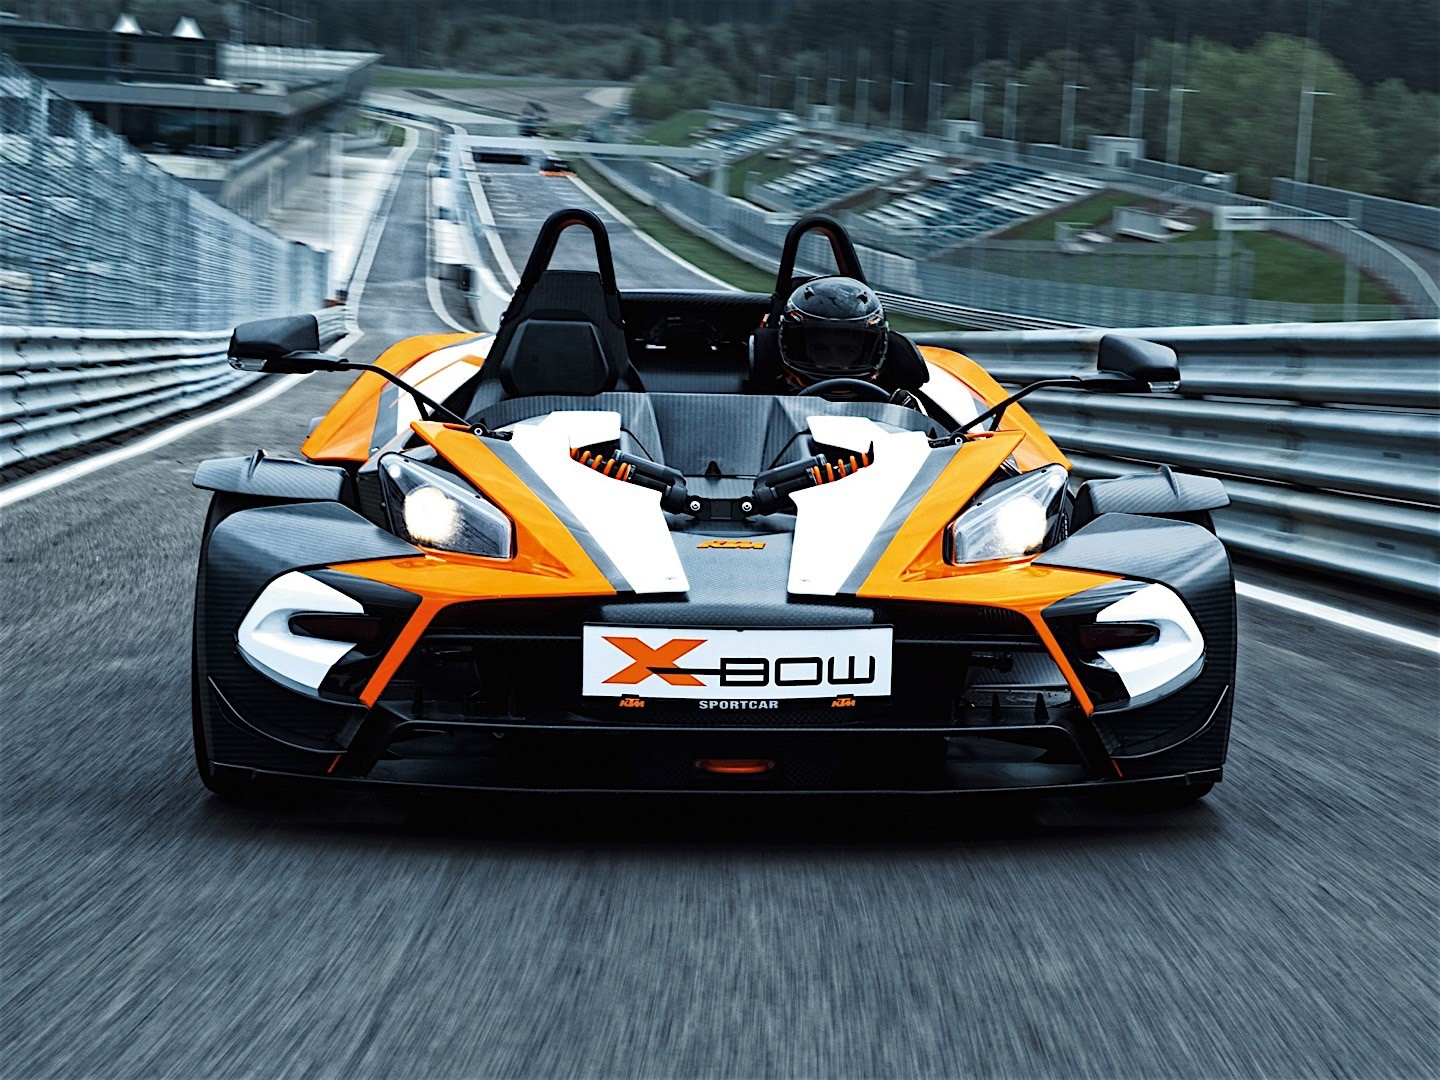 Free Bmw Car Wallpapers Download Ktm X Bow R Specs 2011 2012 2013 2014 2015 2016